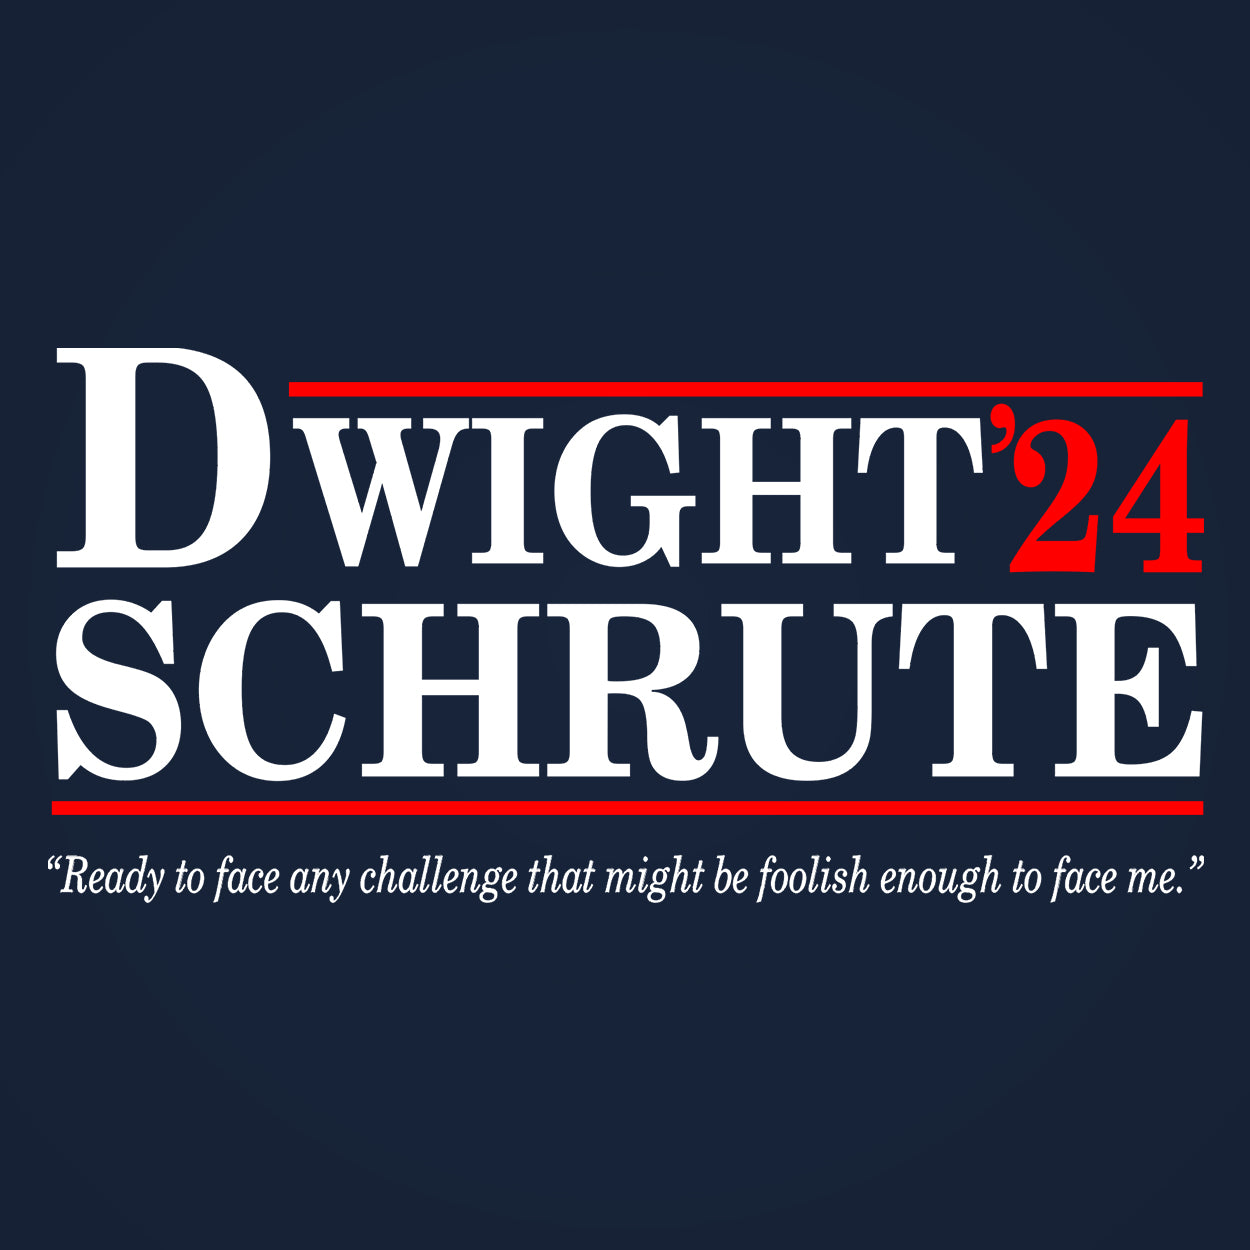 DWIGHT SCHRUTE 2024 Election